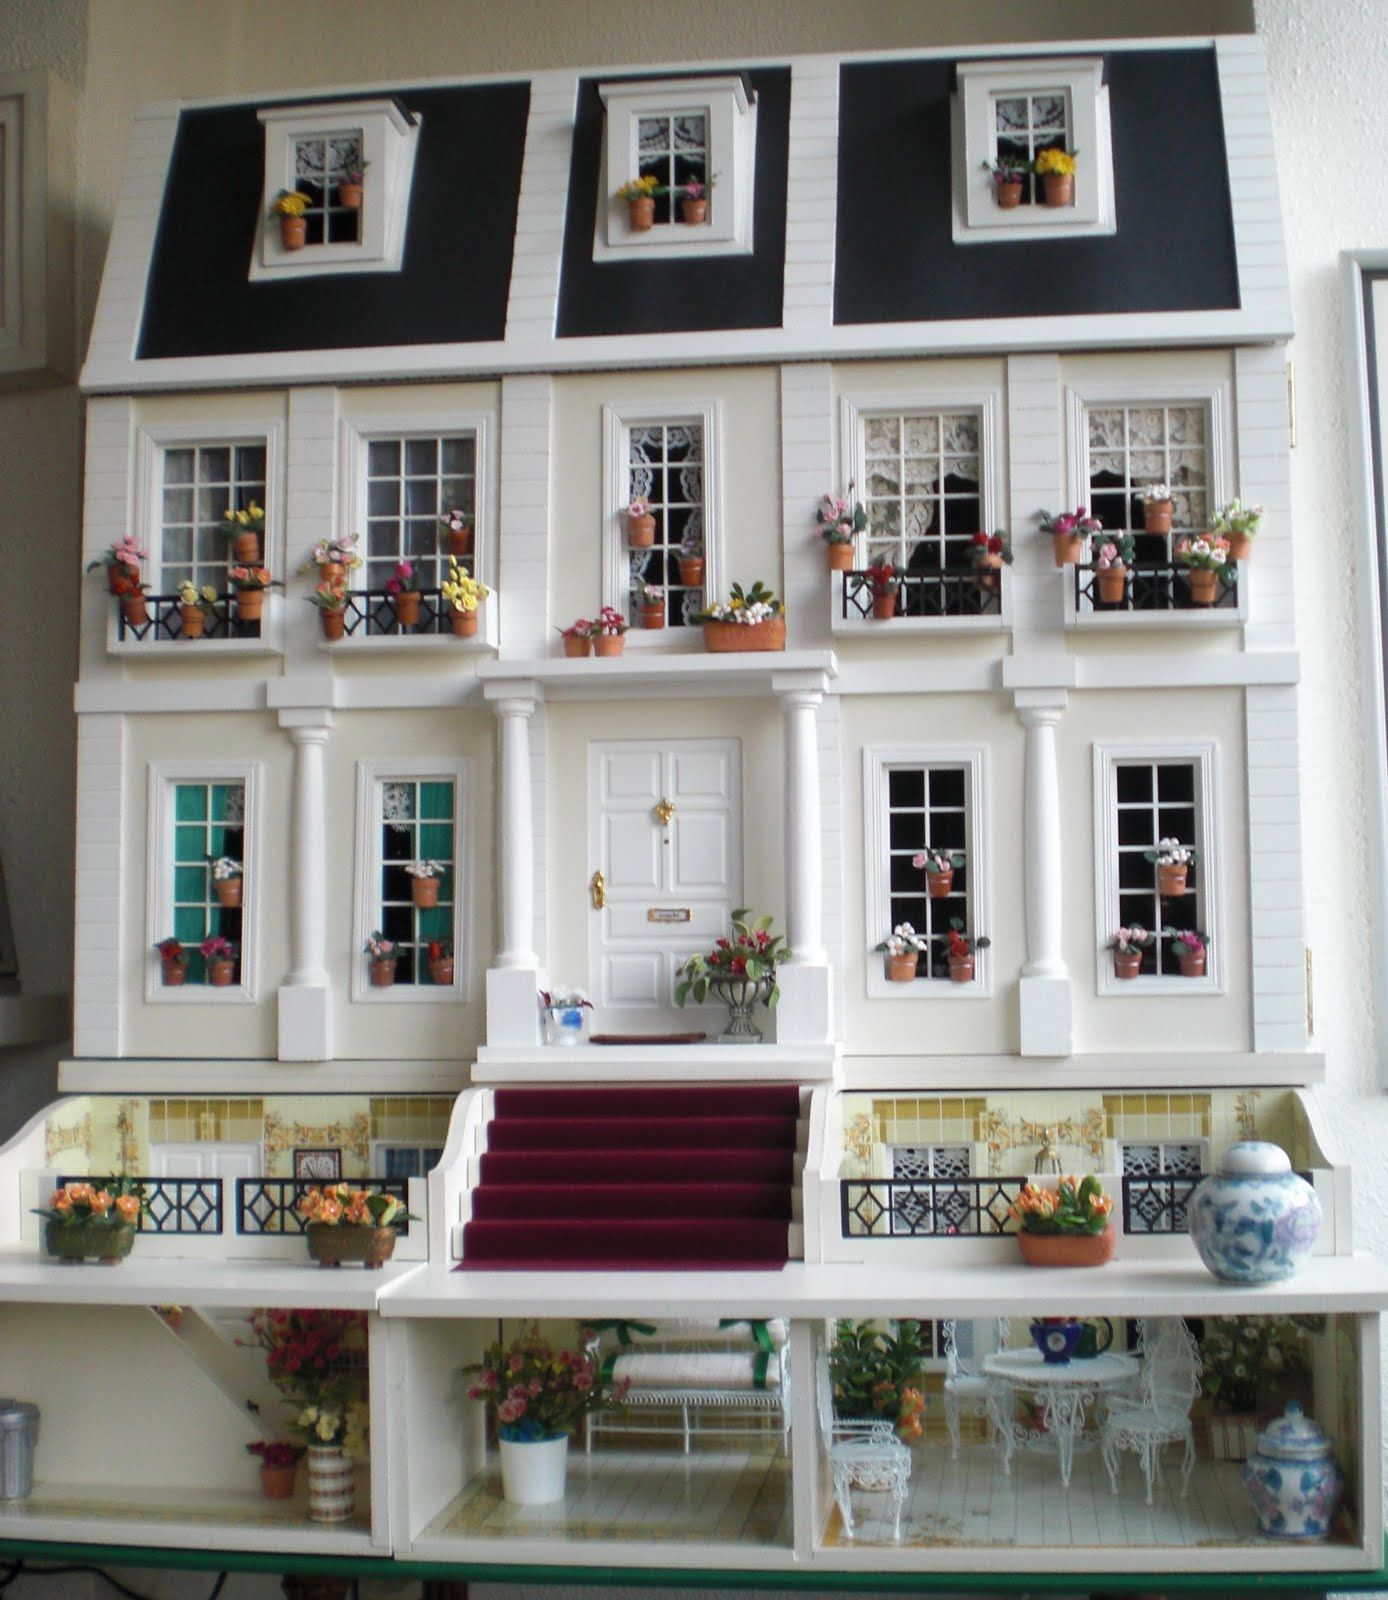 who wrote the dolls house